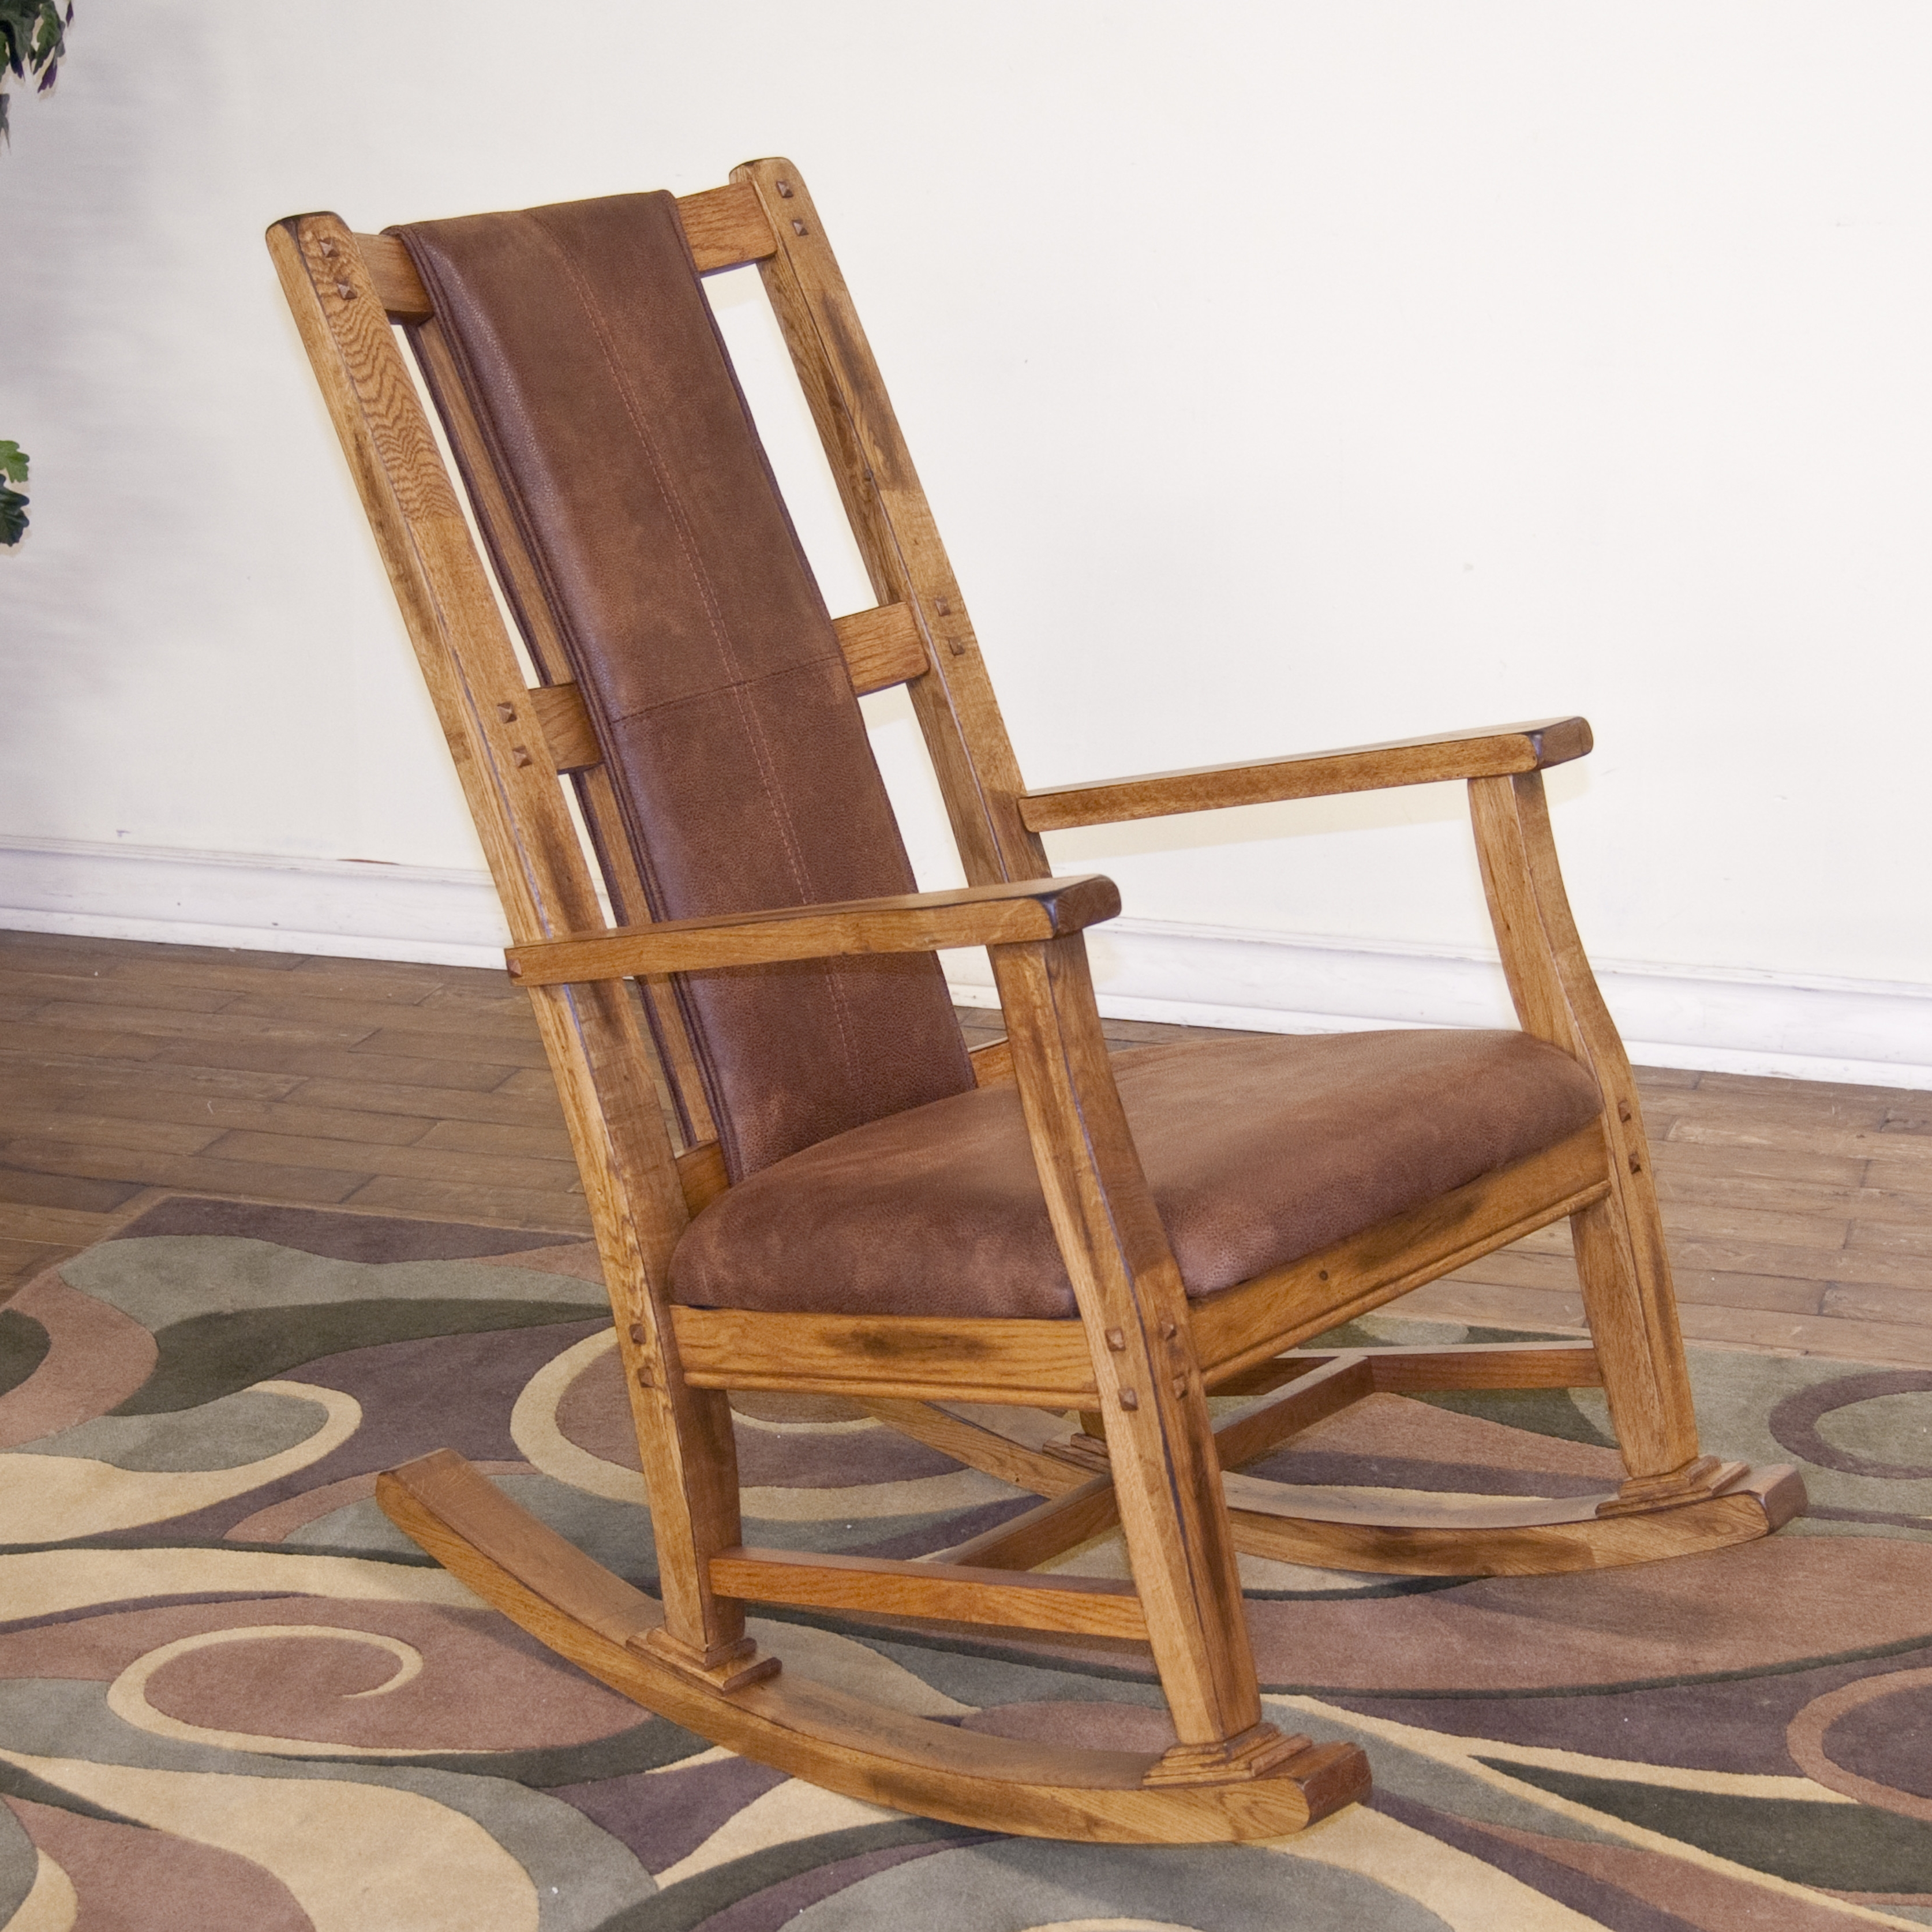 Walmart Rocking Chairs For Popular Black Rocking Chairs Walmart F60X In Amazing Furniture Home Design (View 15 of 15)